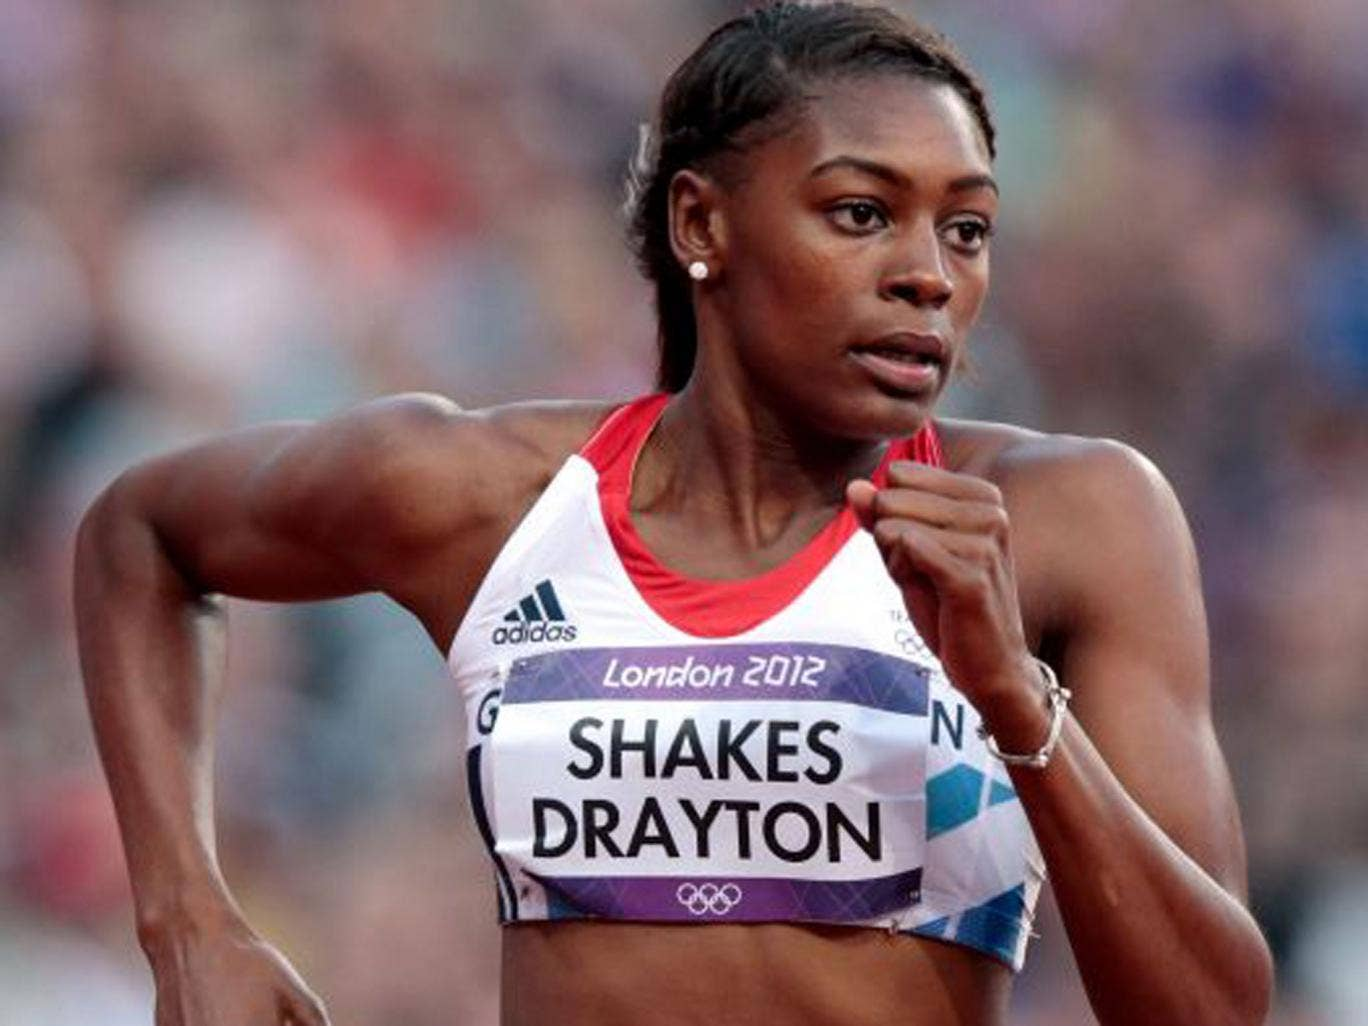 Perri Shakes-Drayton, 400m: The 400m hurdler is in great shape on the flat.